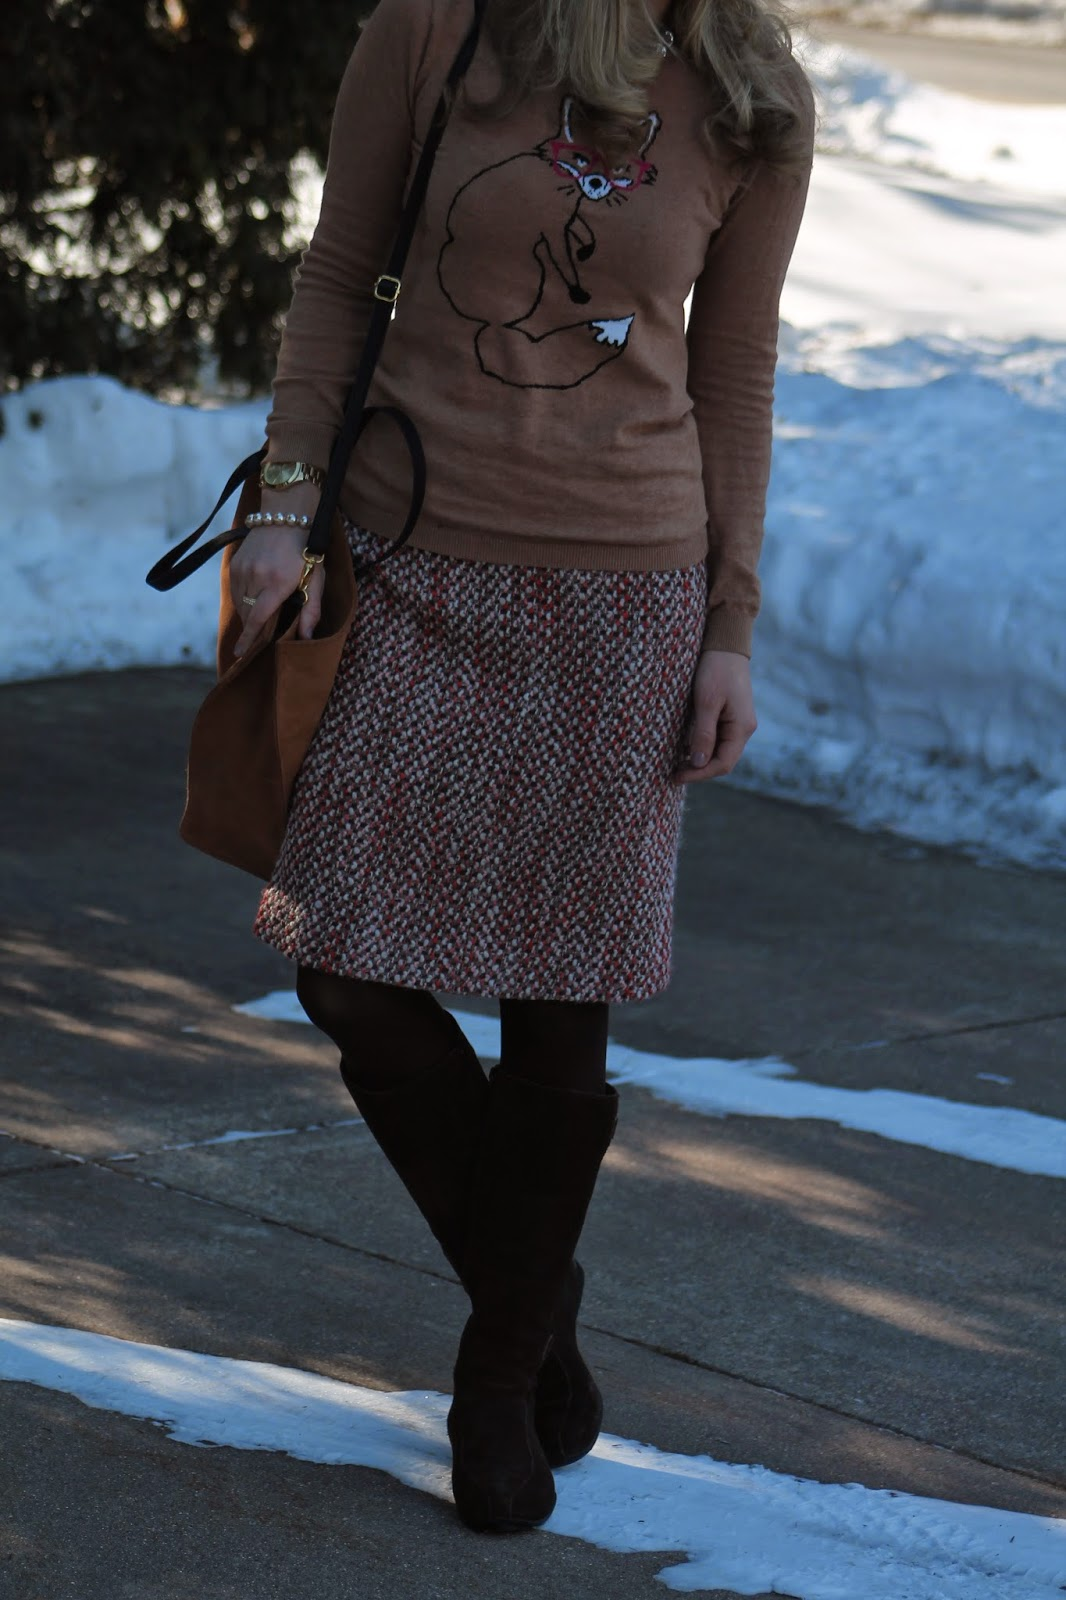 Pink Tweed Skirt and Fox Sweater